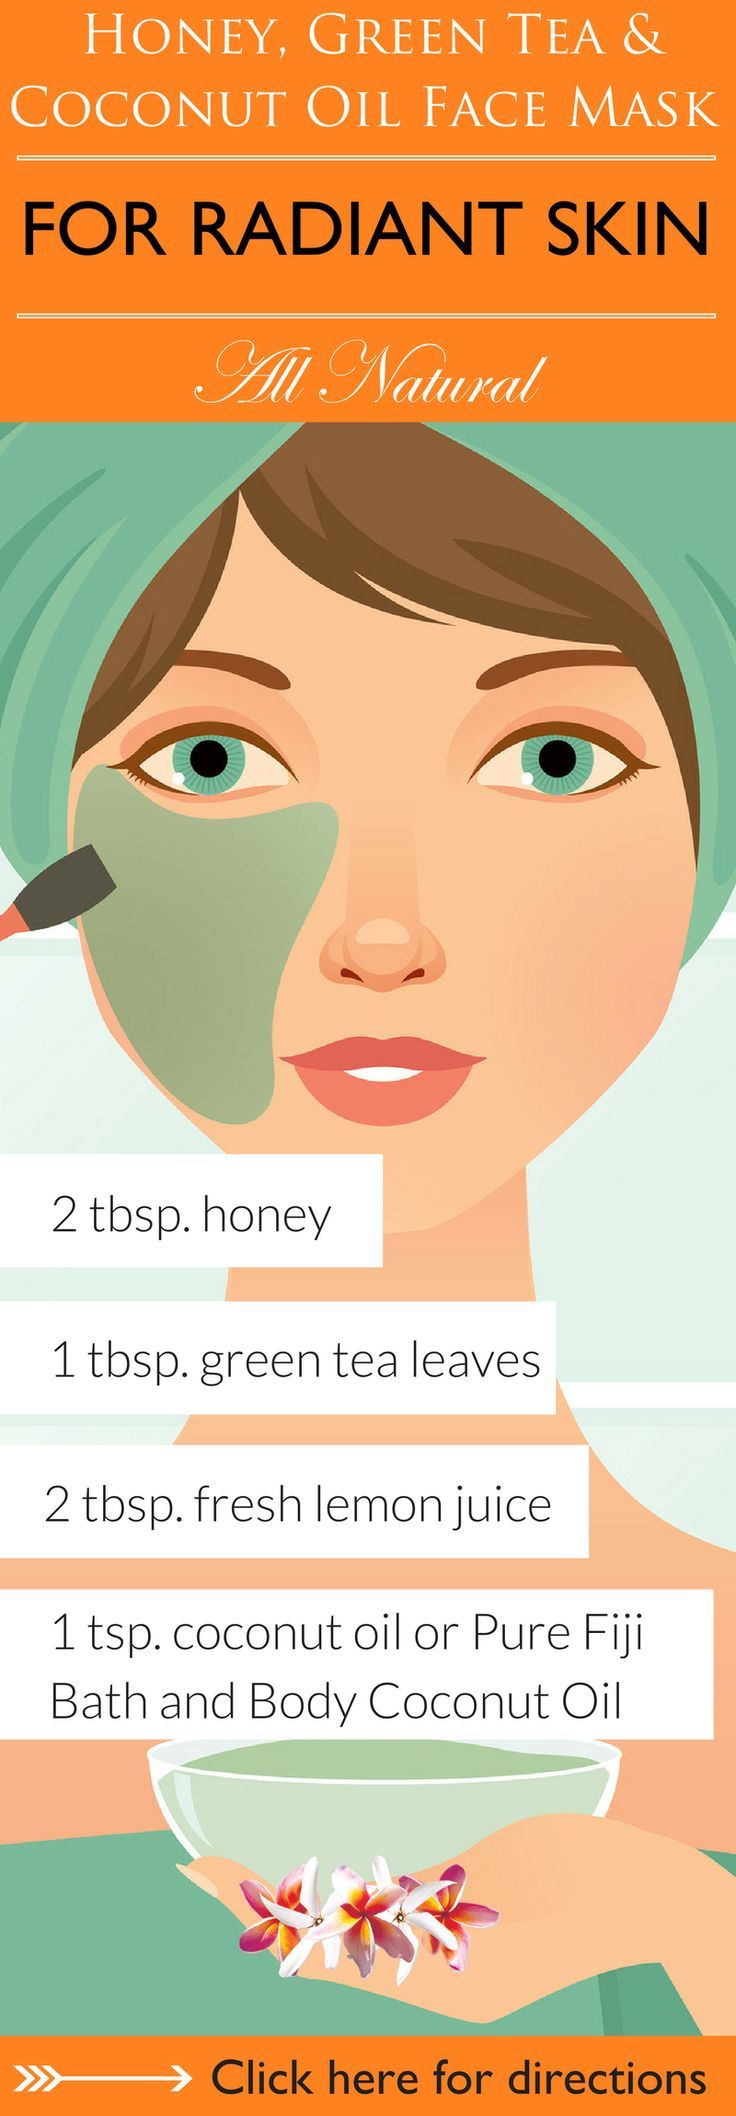 Beauty Hacks | This combination of anti-oxidant rich green tea, soothing coconut oil, lemon and detoxifying honey will leave your skin feeling moisturized and radiant. Click here to learn 6 DIY coconut oil face mask recipes for you to try that are sure to leave your skin soft, supple and radiant http://www.purefiji.com/blog/coconut-oil-face-masks/